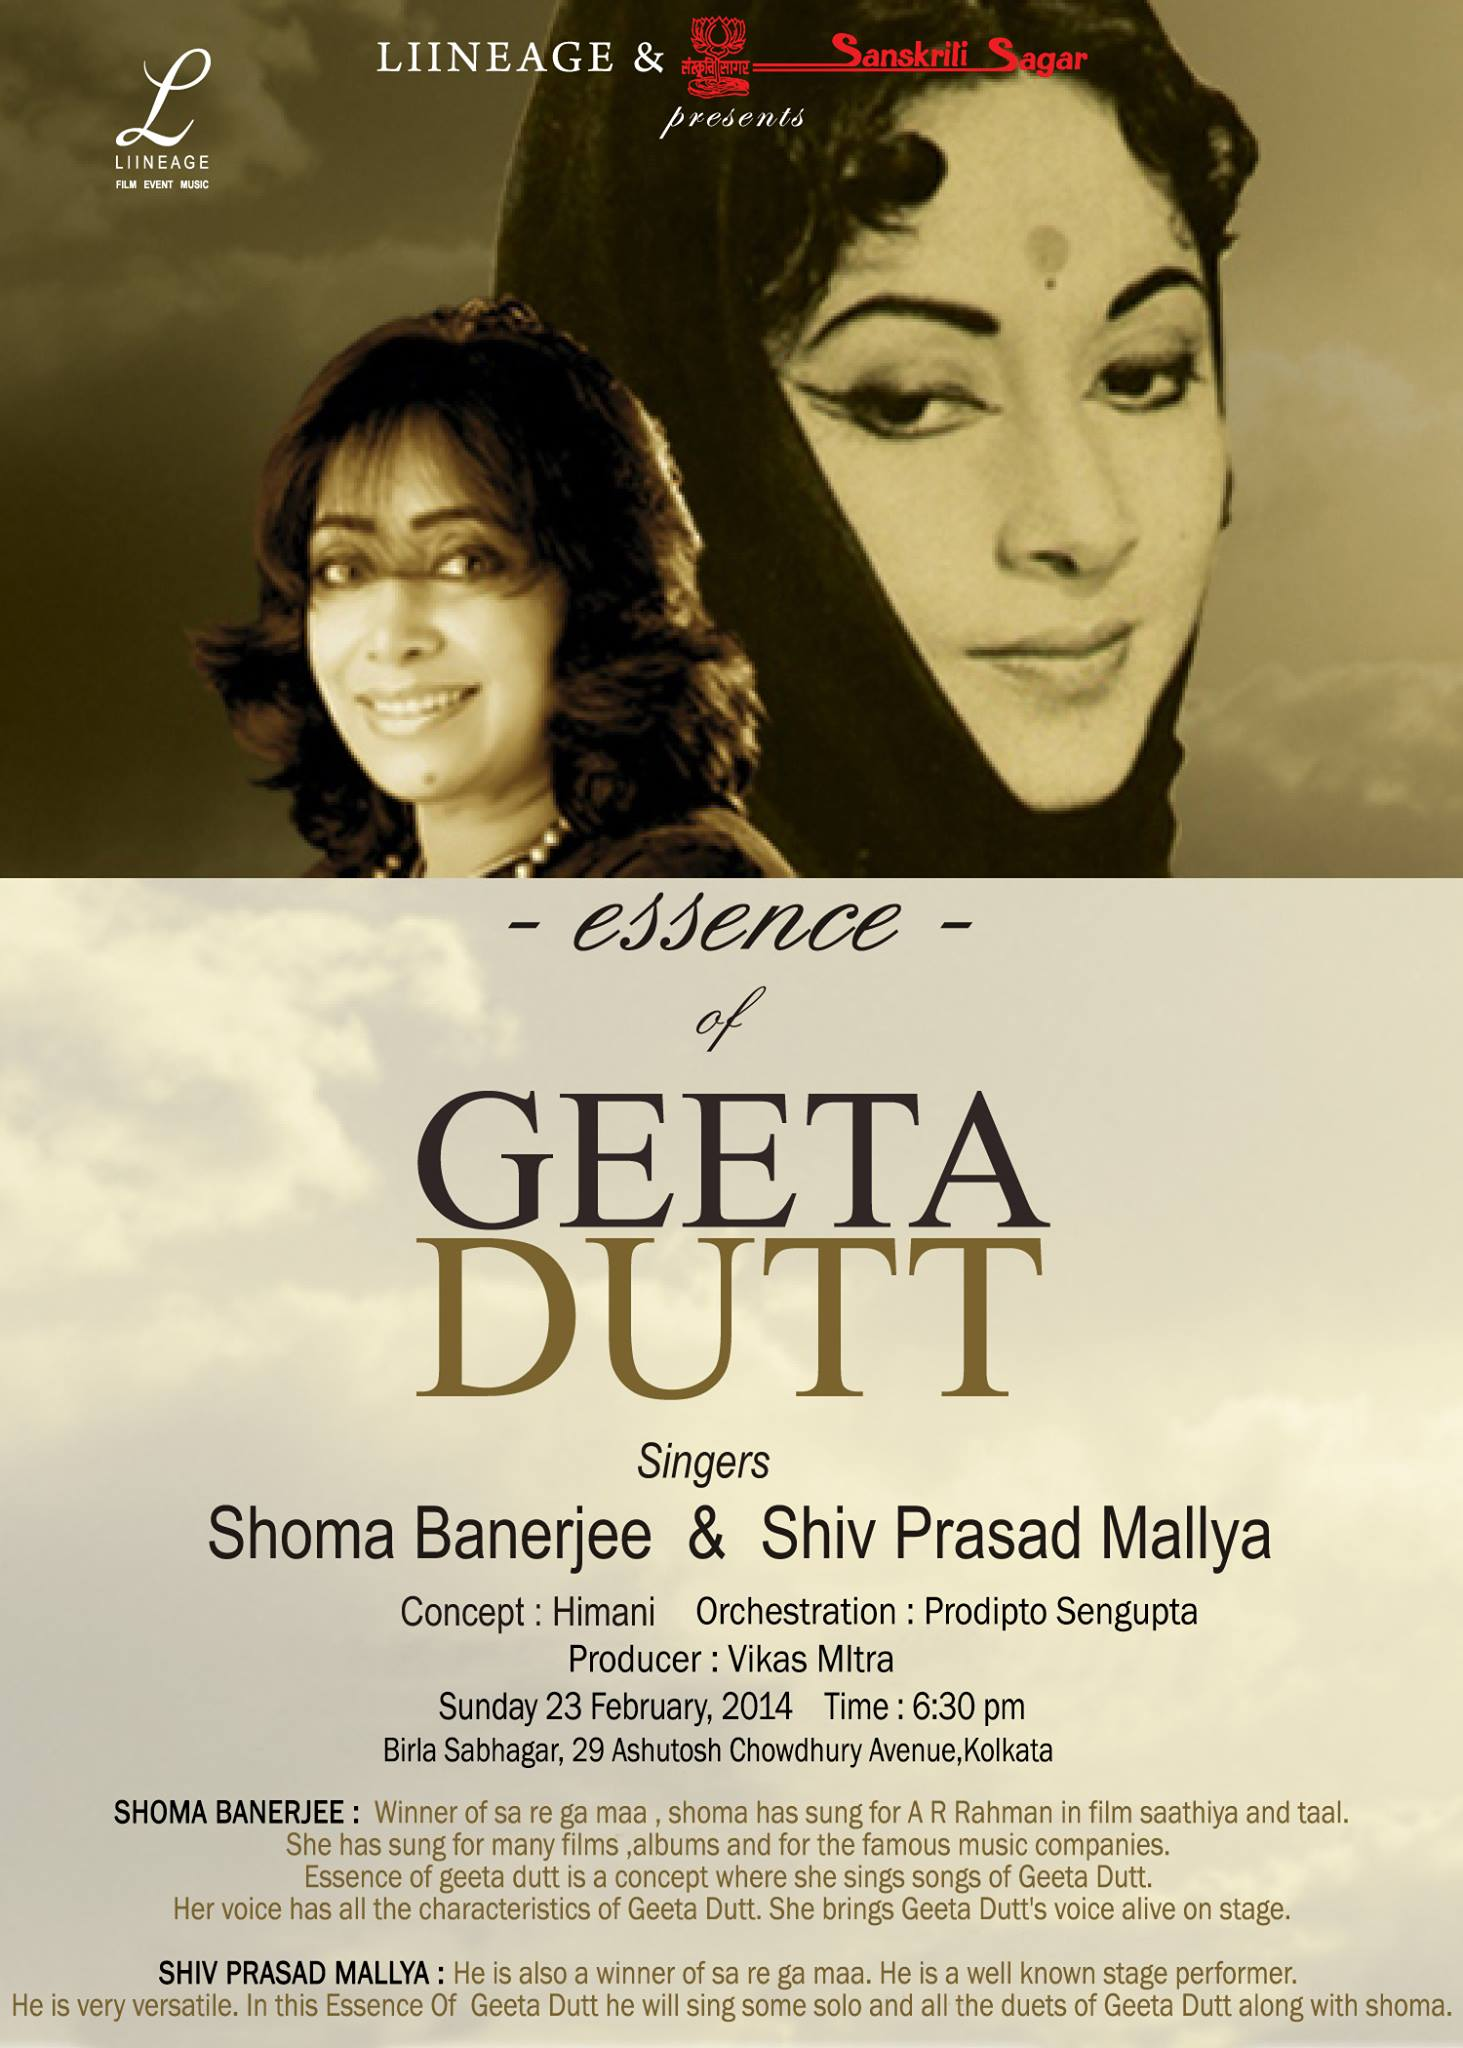 Geeta Dutt program